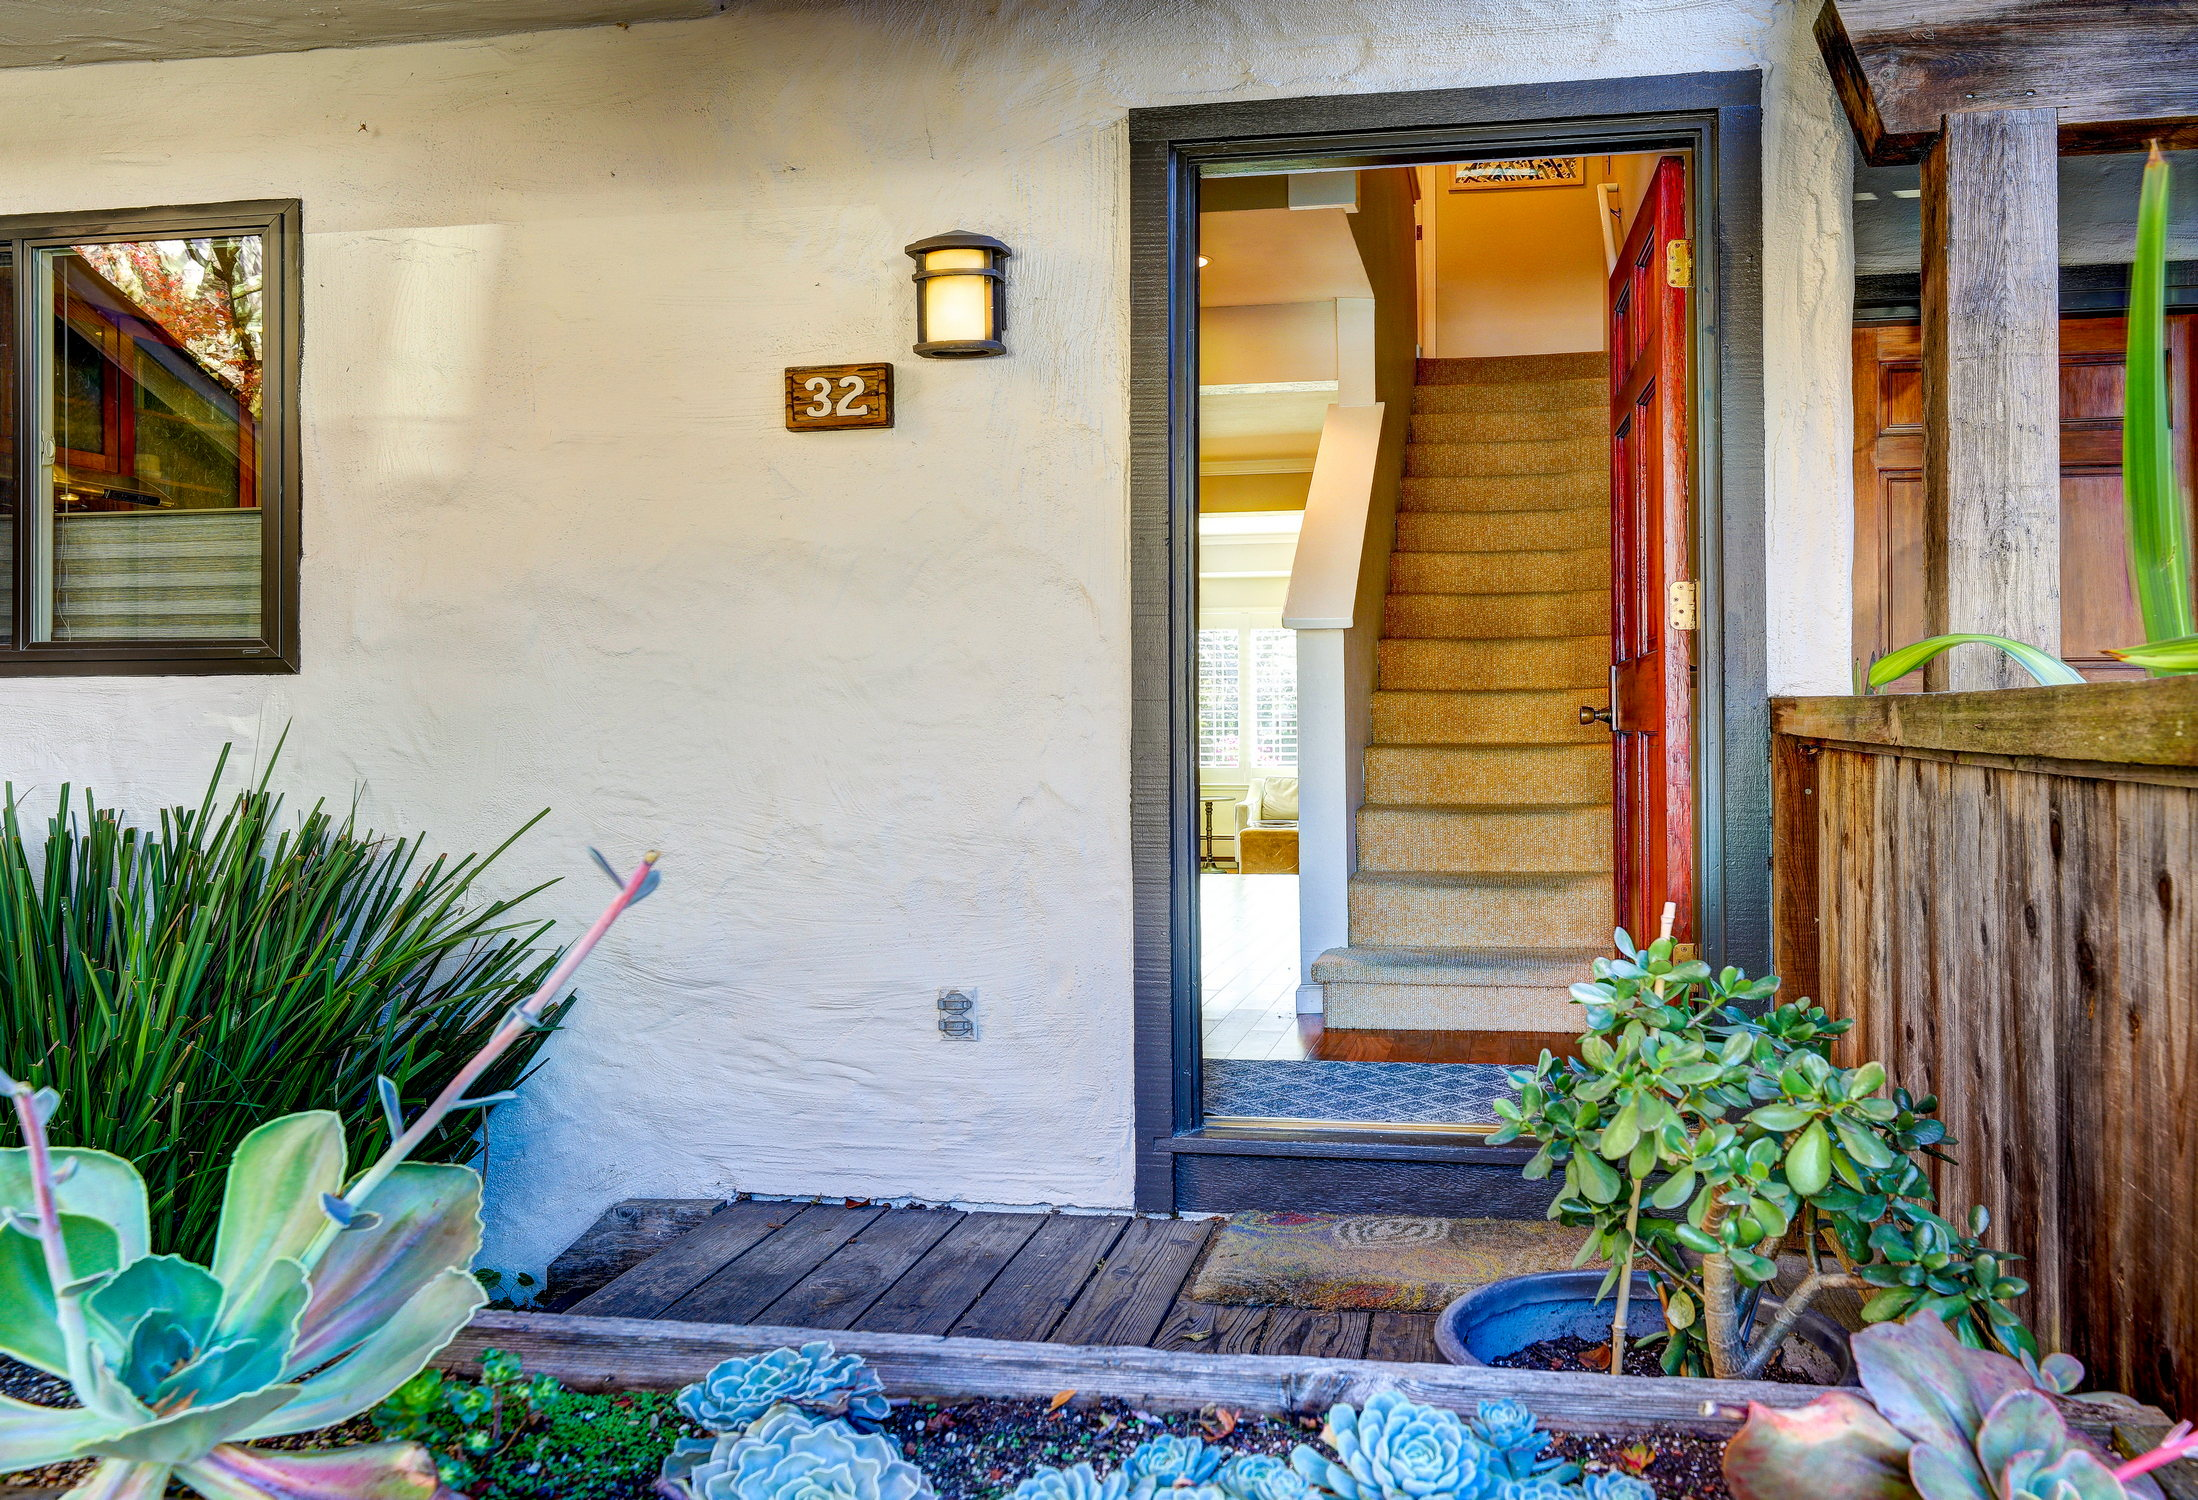 32 Park Terrace Mill Valley 02 MLS- Own Marin Pacific Union - Marin County Realtor.jpg